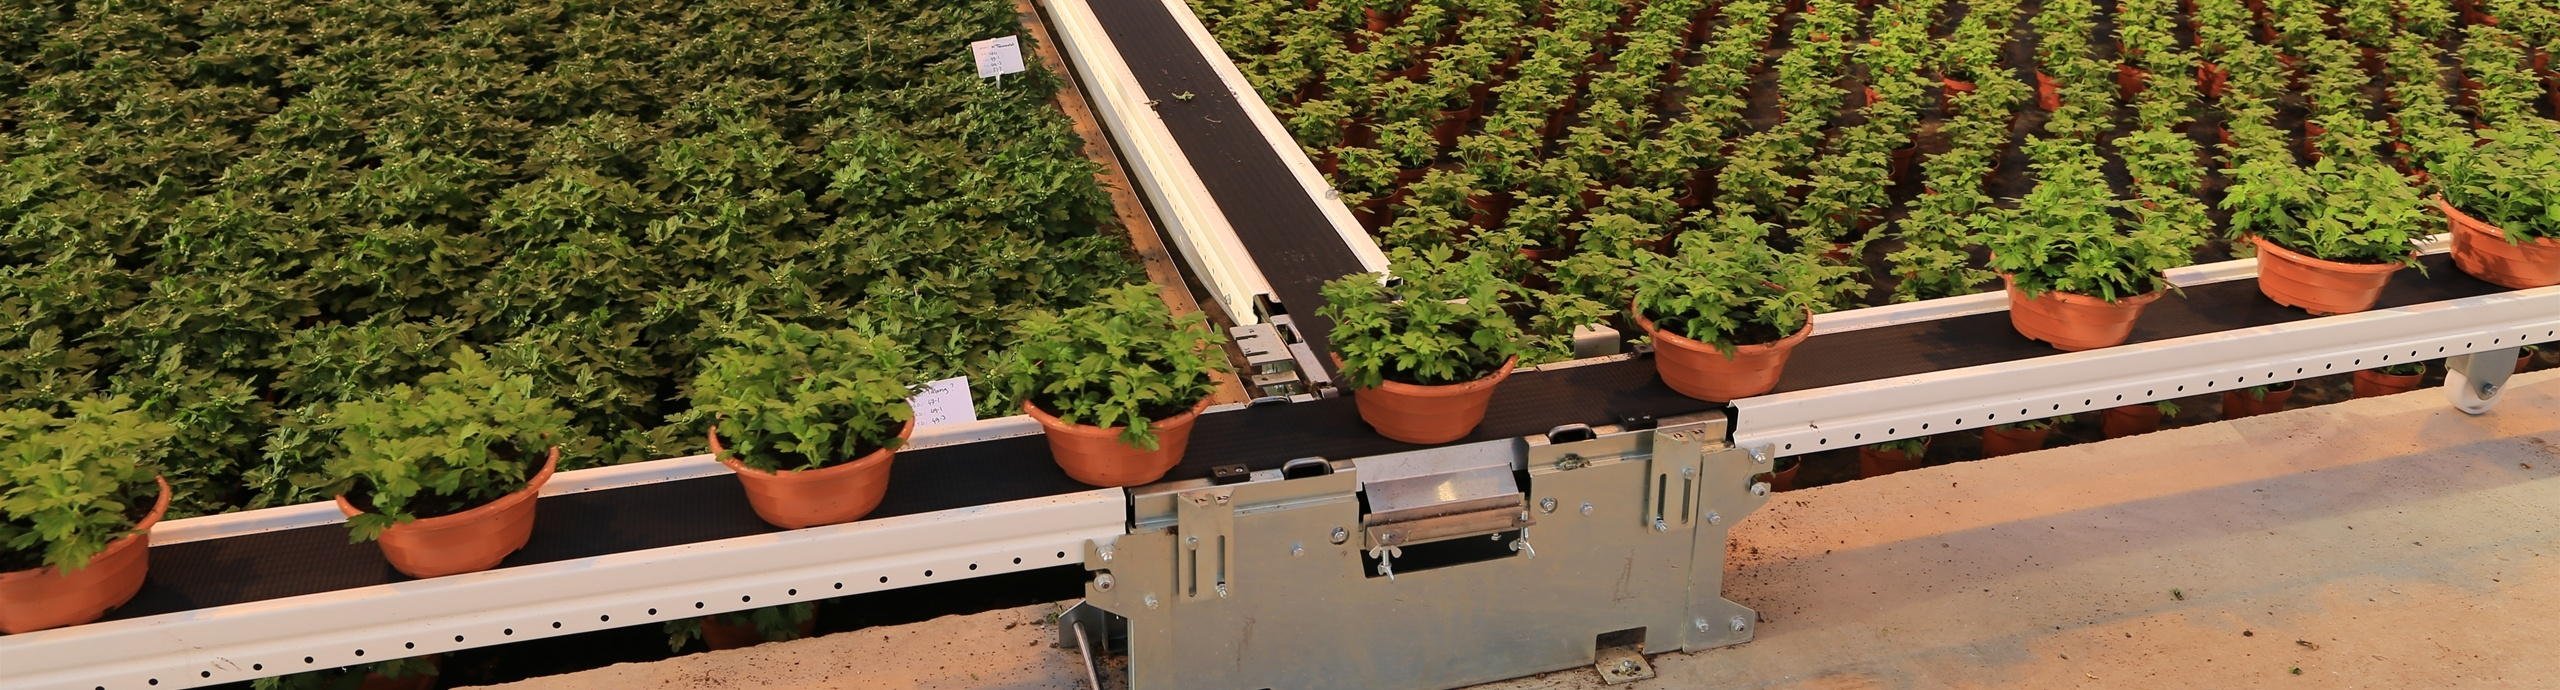 10 questions about conveyor belts - WPS | WE PROVE SOLUTIONS